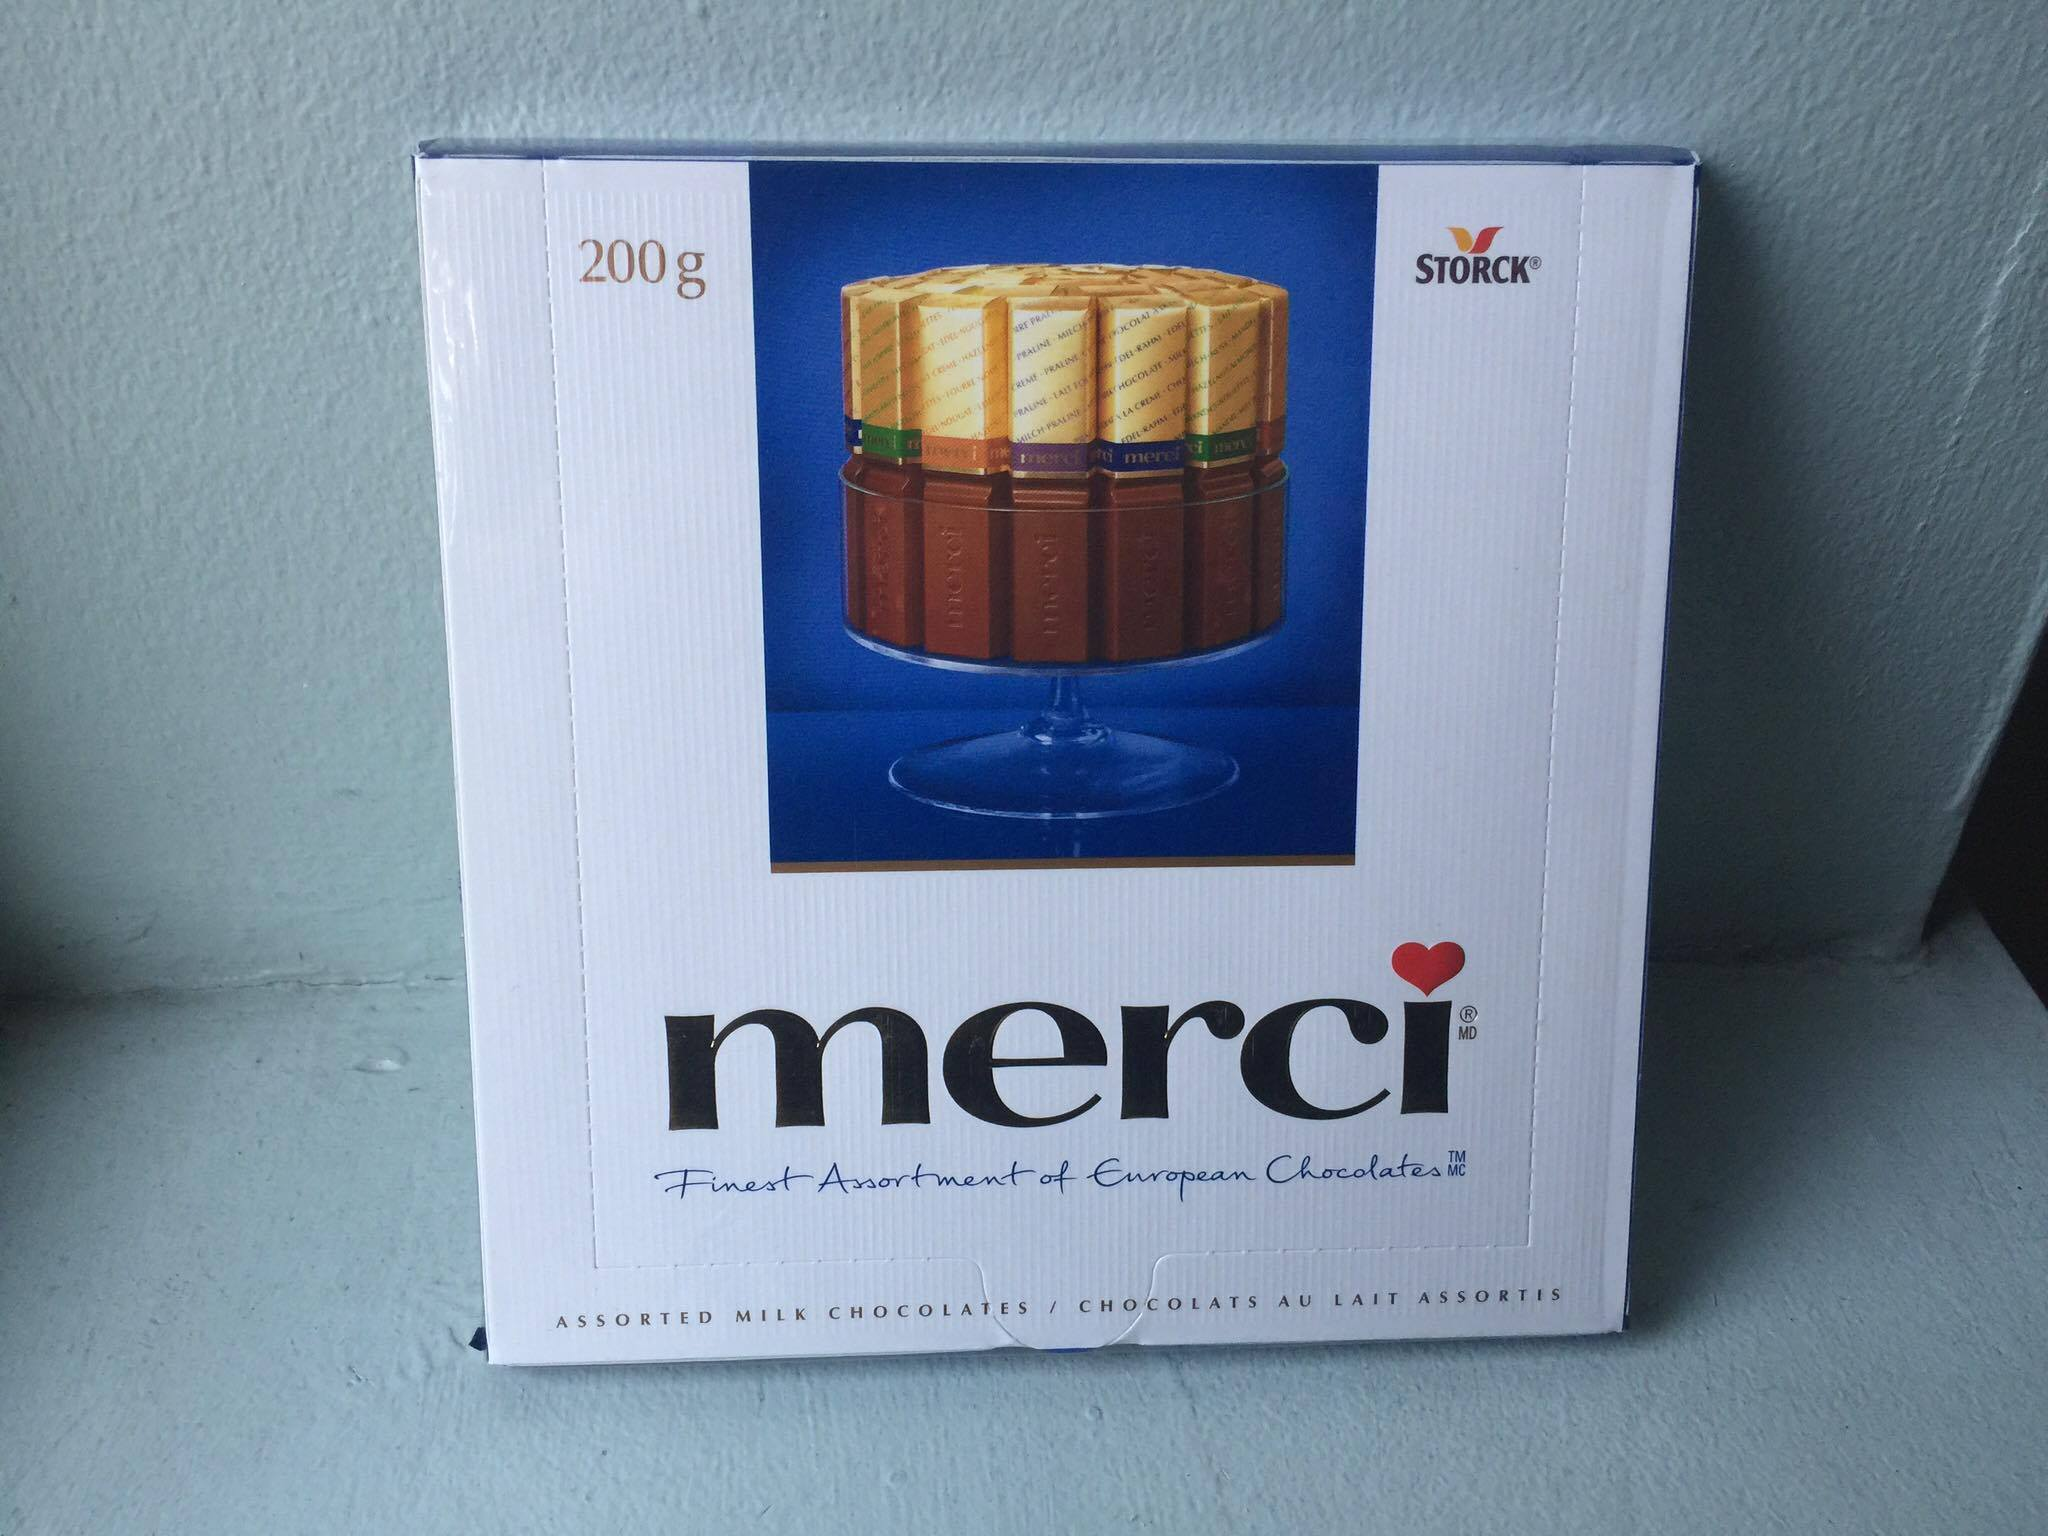 Merci European Chocolates reviews in Chocolate - ChickAdvisor